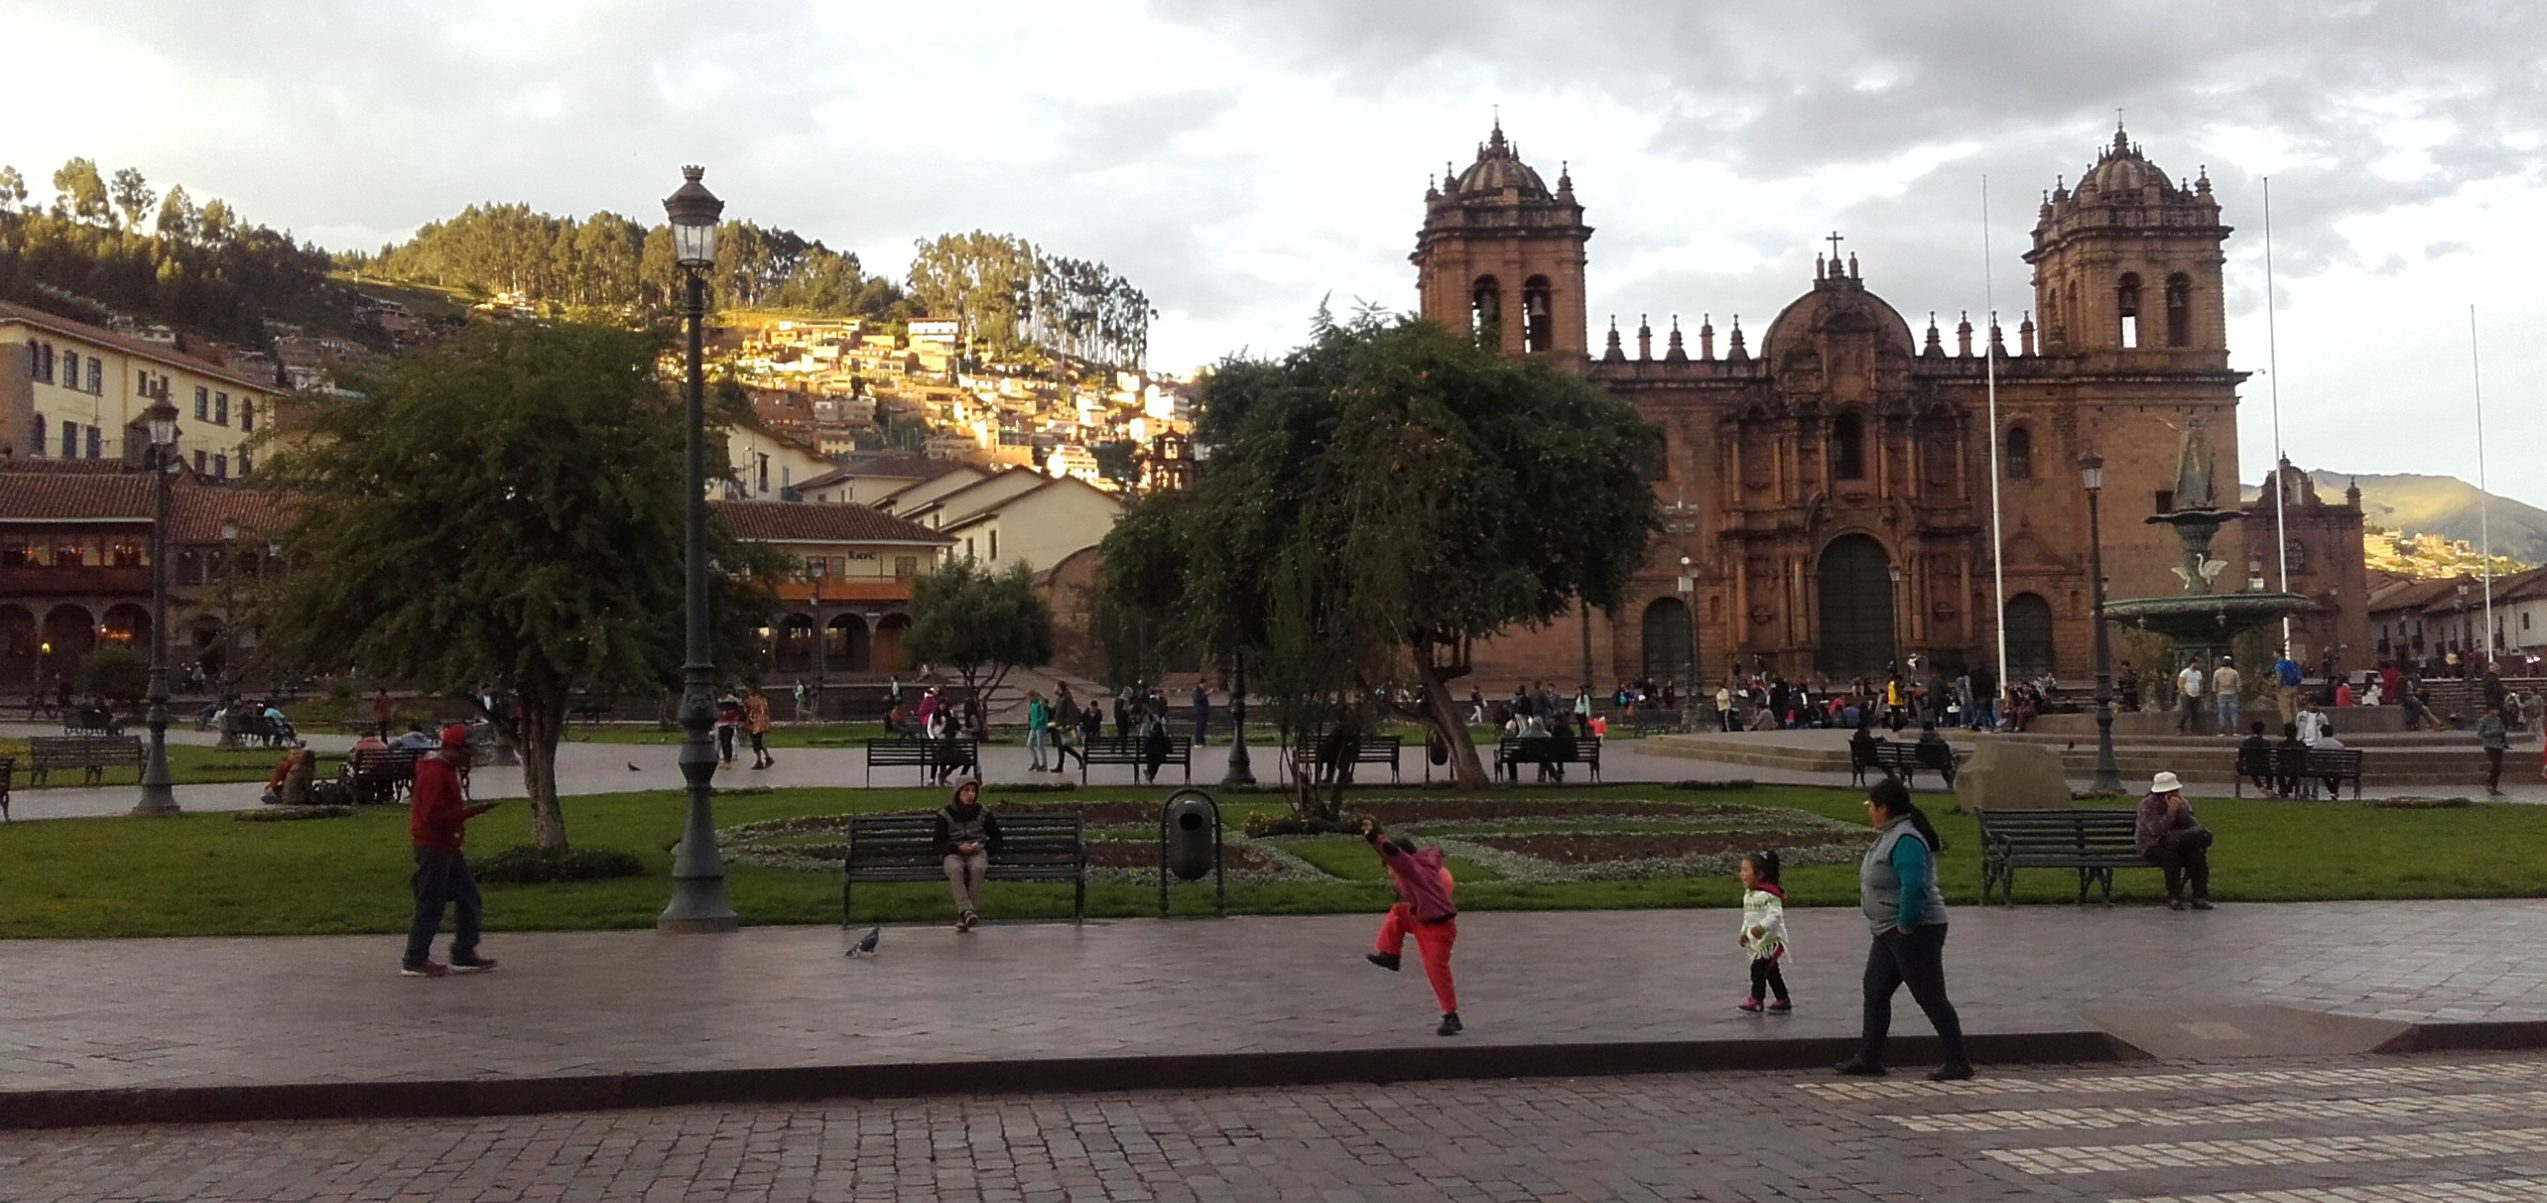 The Technical Cooperation in Peru integrates the Provincial Municipality of Cusco